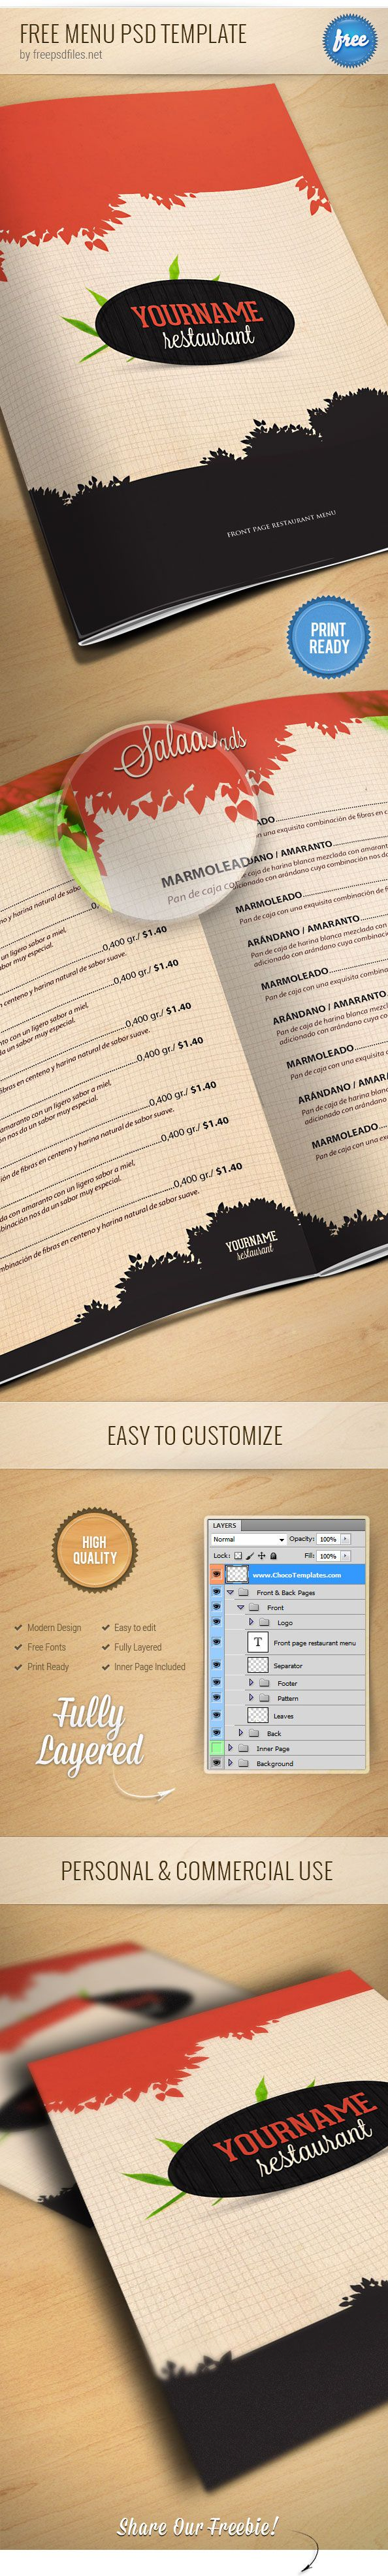 FREE Restaurant Menu PSD Template